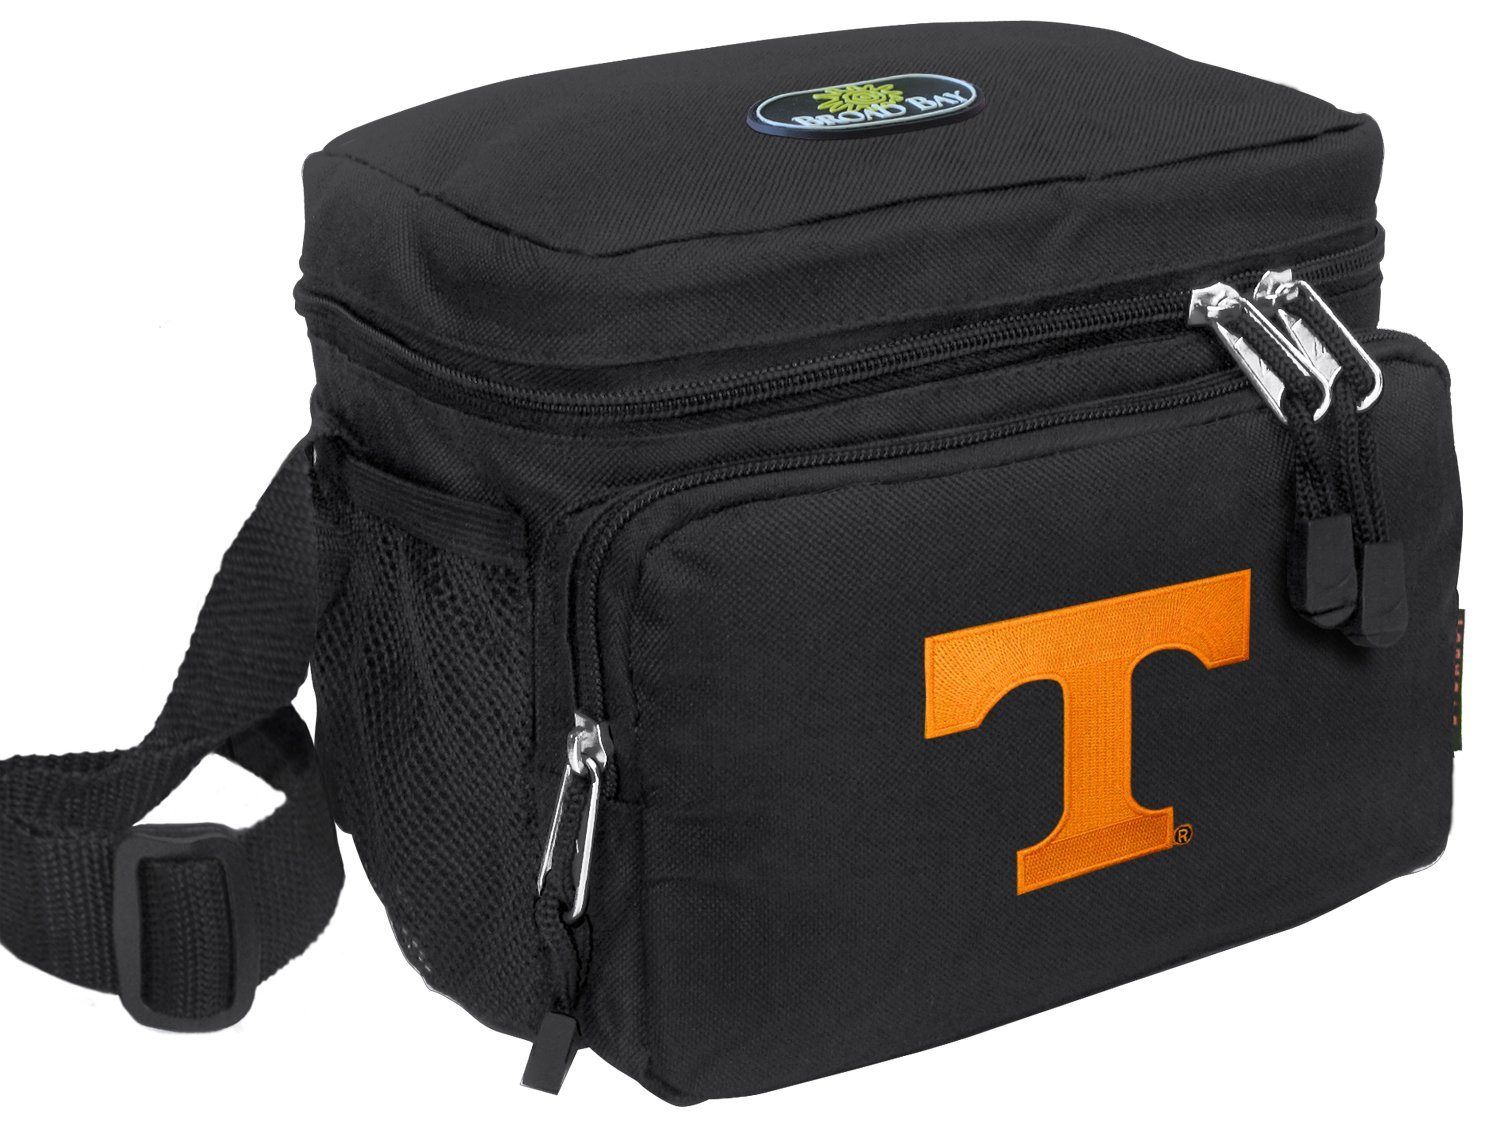 4f5da5b2d141 [Hot Item] Non-Woven/Polyester Custom Food Portable Folding Picnic  Insulated Lunch Cooler Bag